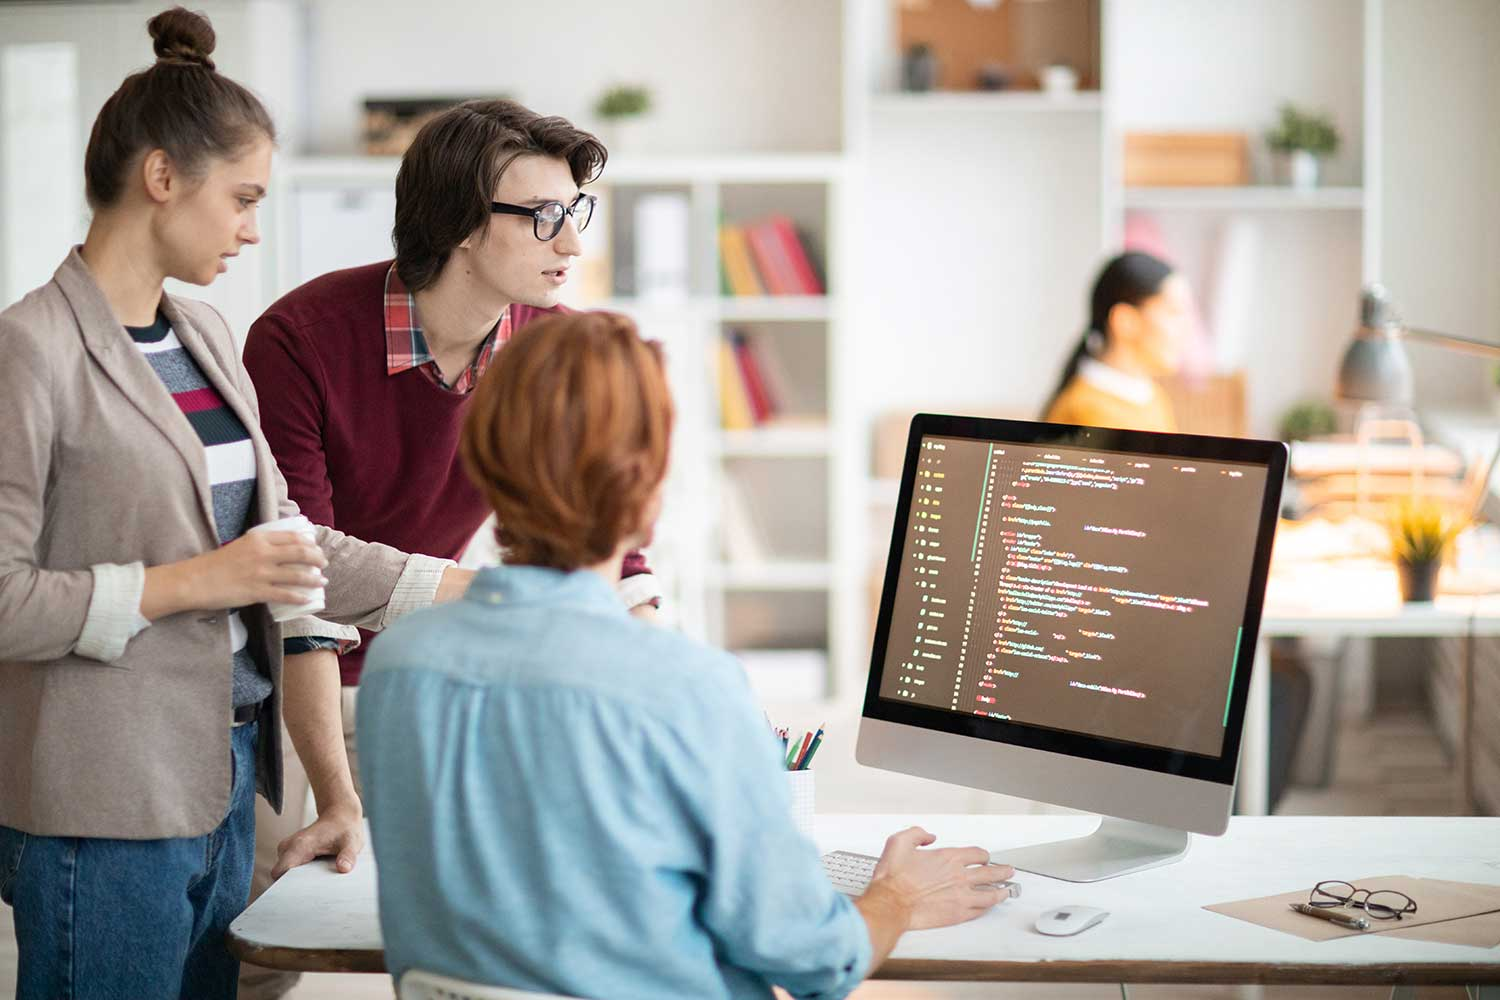 What are the benefits of recruiting an offshore software development firm?